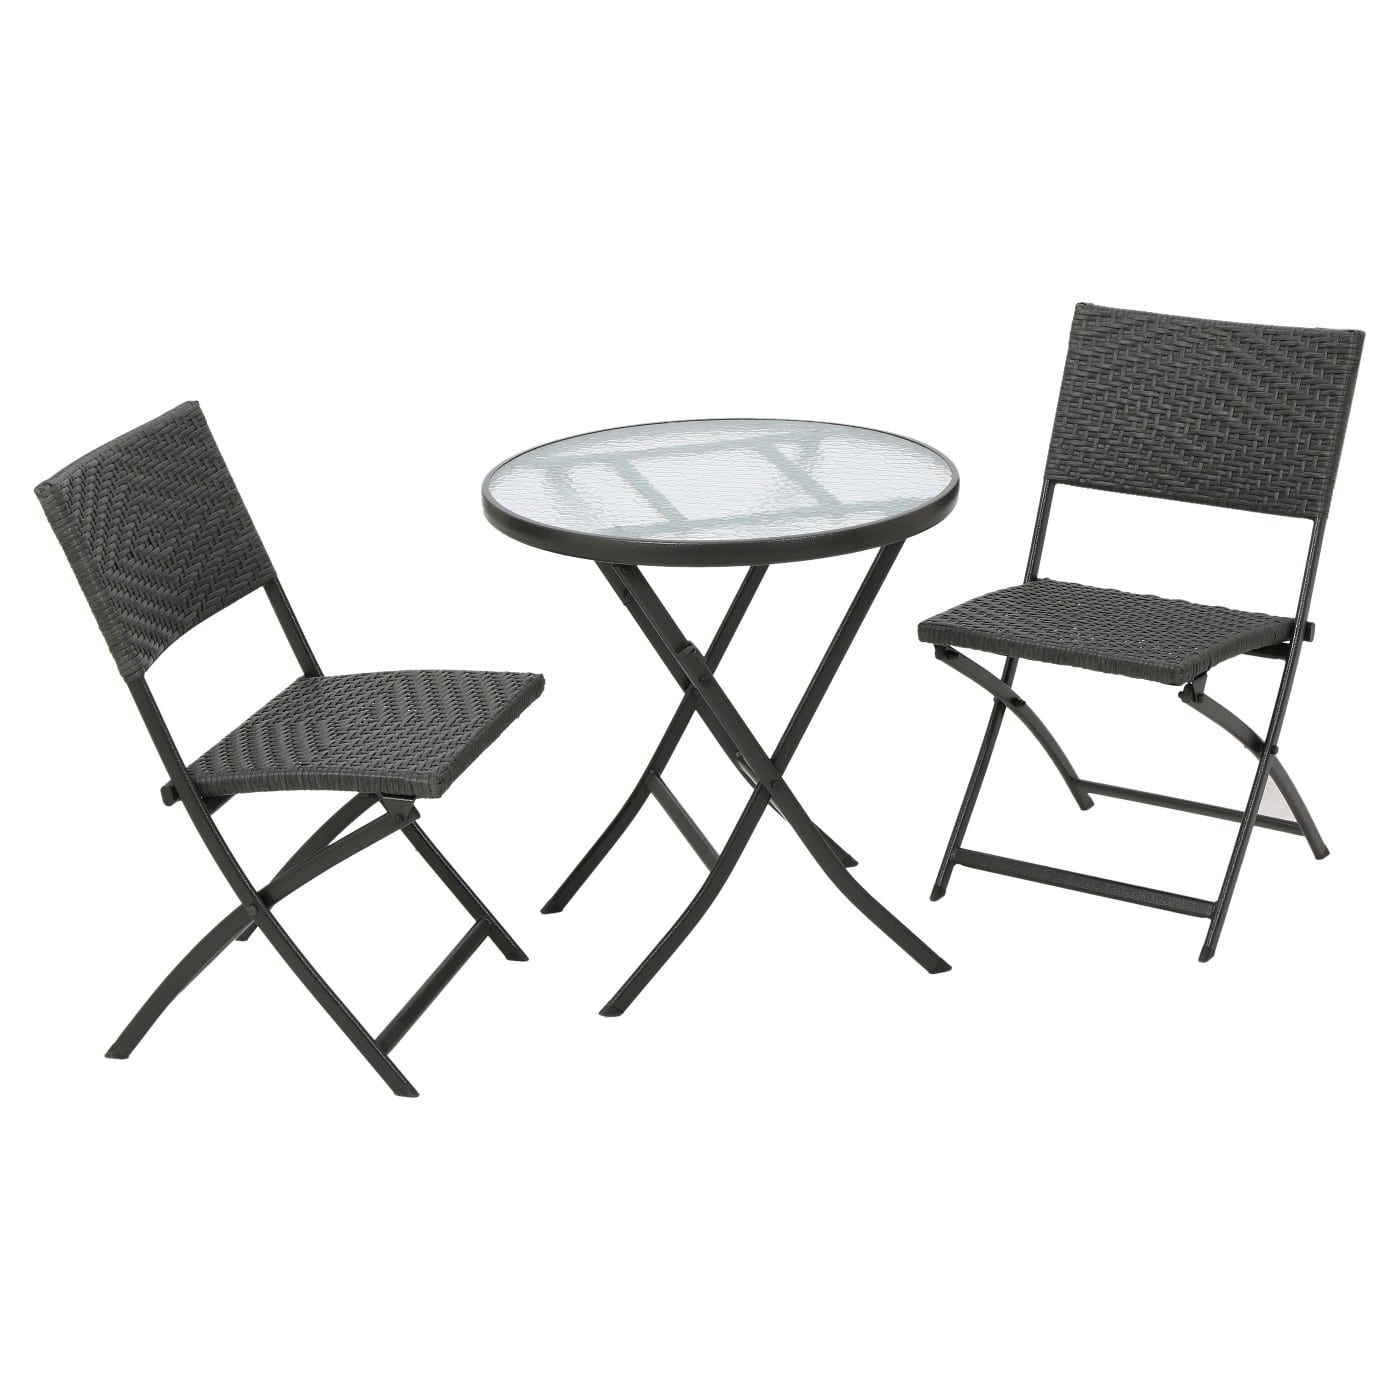 Spend $100, save $25 on patio furniture, rugs & fire pits* @ Target